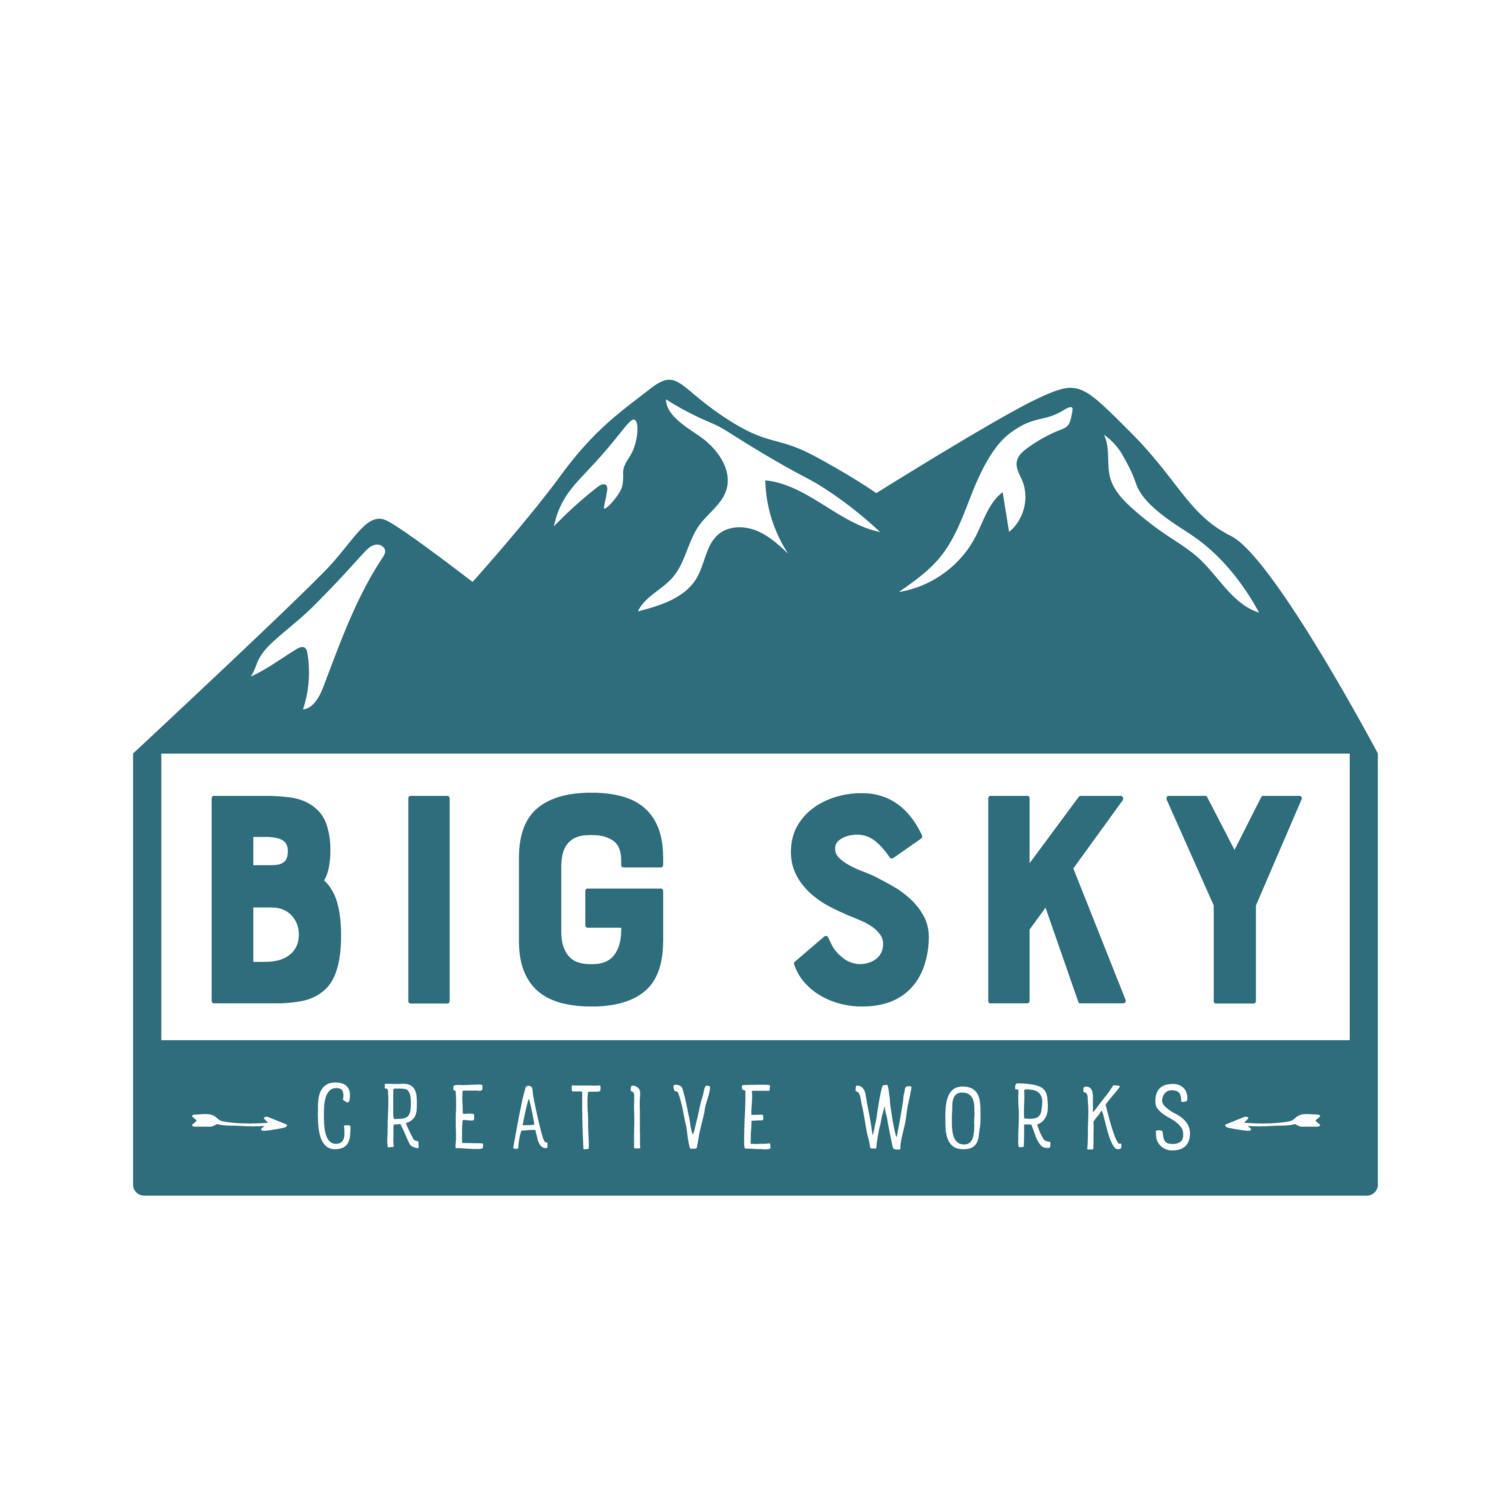 Big Sky Creative Works